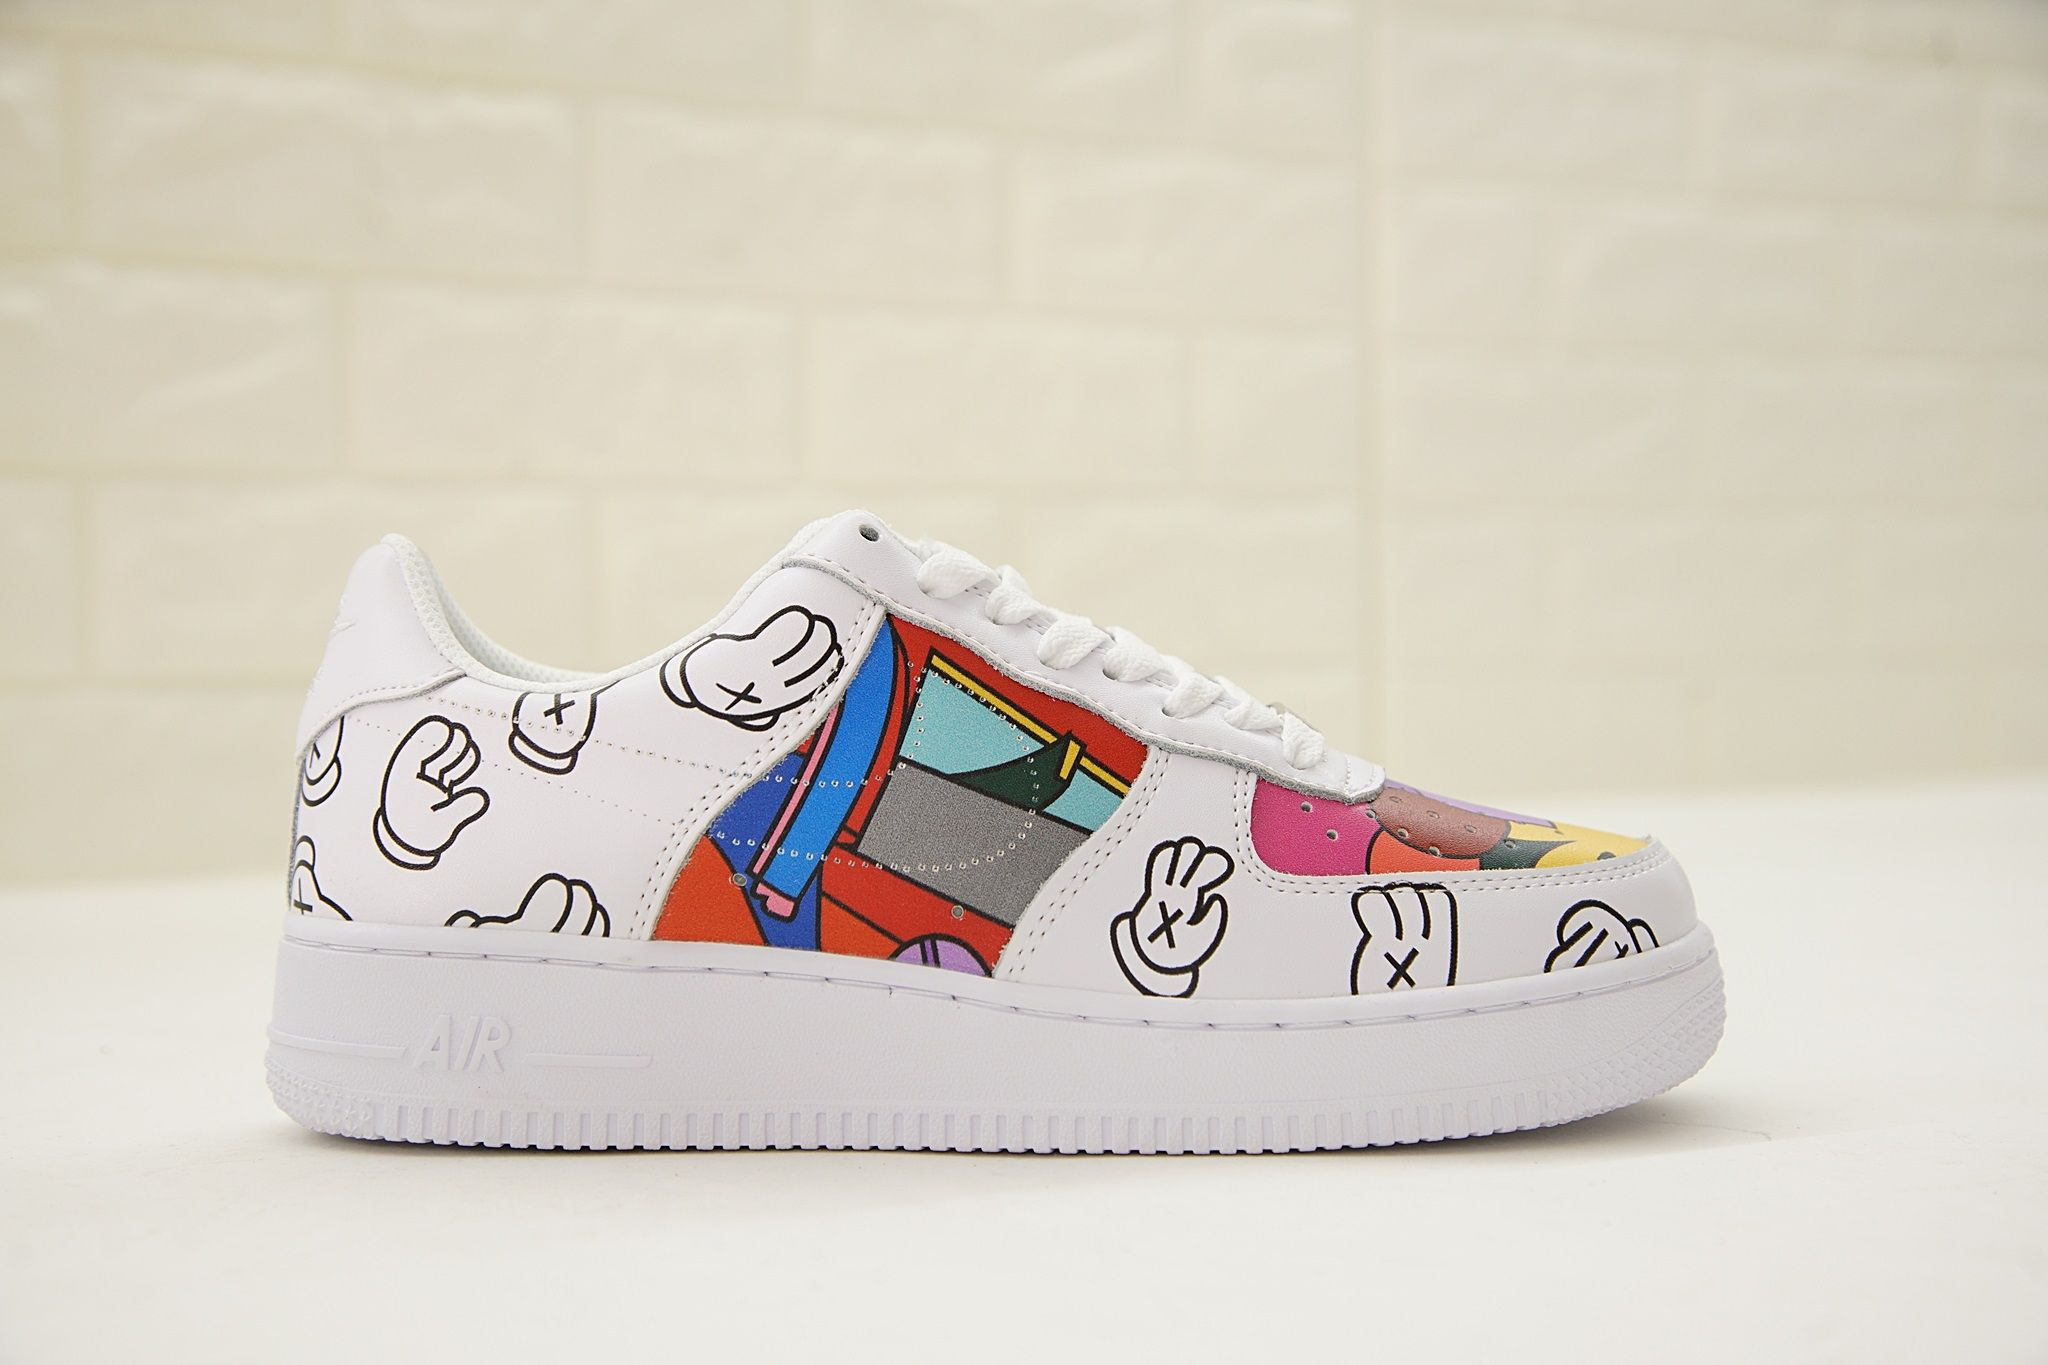 promo code 0bb03 b757e KWAS X NIKE AIR FORCE 1 LOW CUSTOM MADE DESIGN SPONGEBOB FIGURED